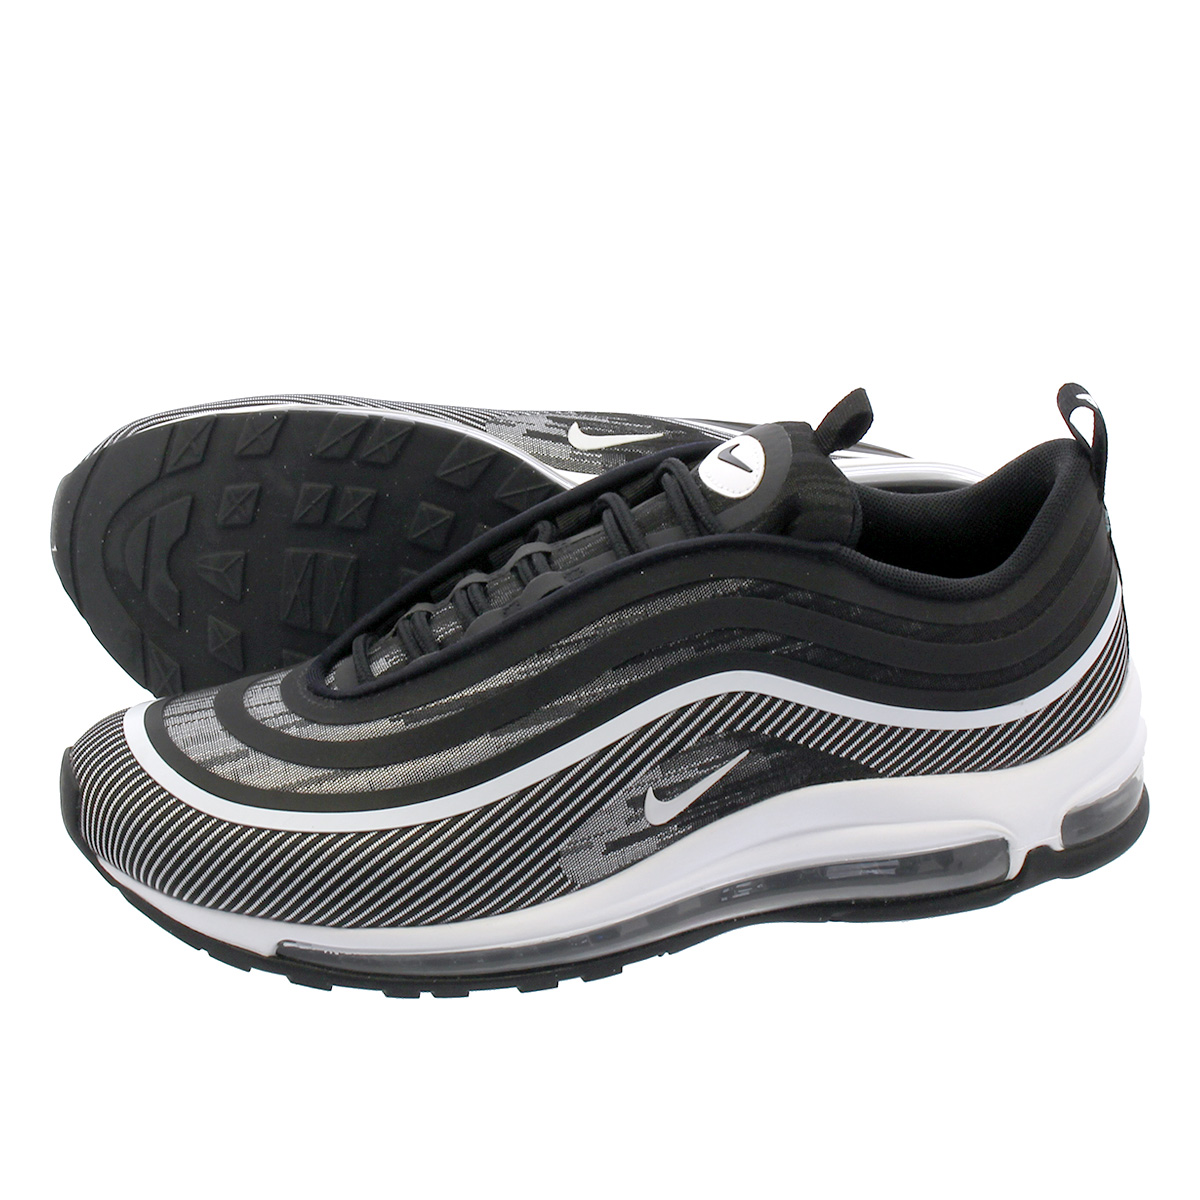 LOWTEX PLUS  NIKE AIR MAX 97 UL  17 Kie Ney AMAX ultra 17 BLACK ... 9b4151f05